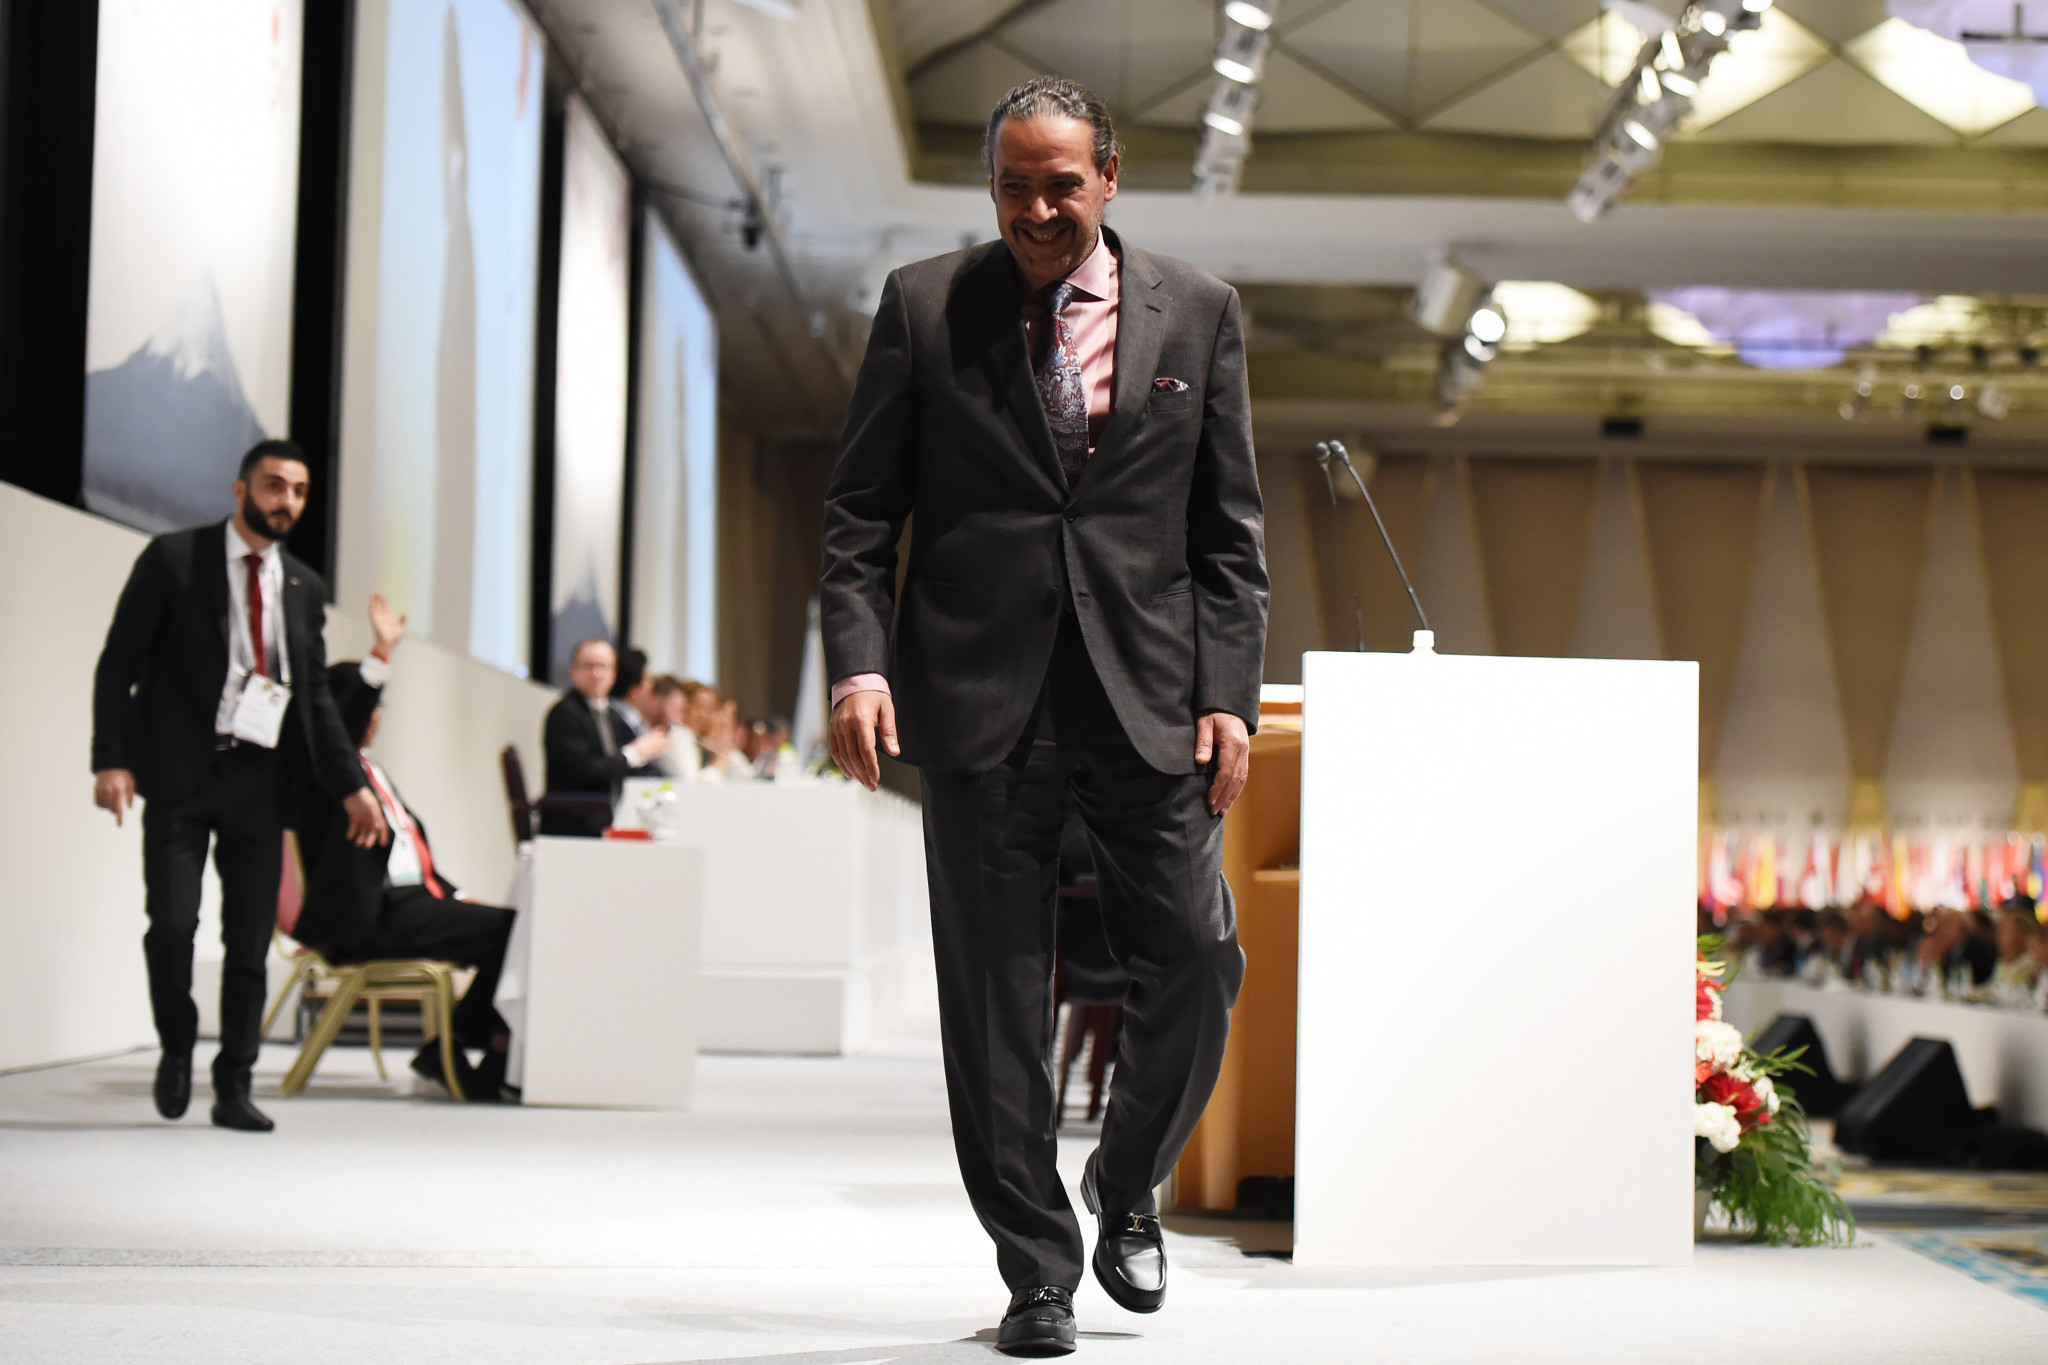 Sheikh Ahmad steps aside as ANOC President on opening day of General Assembly